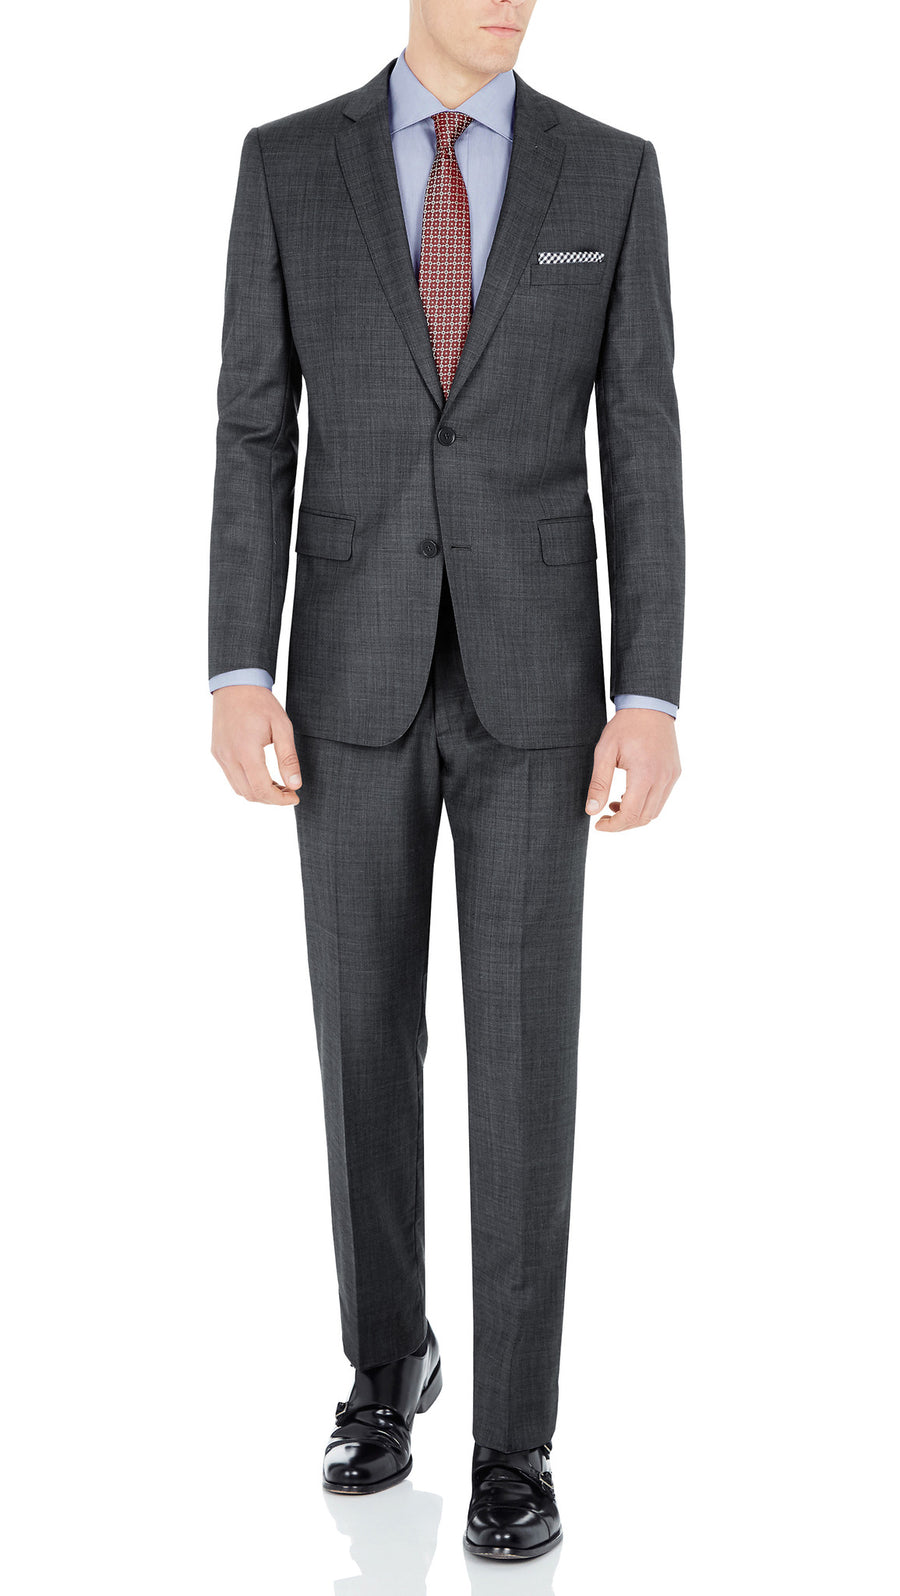 Studio Italia Suit in Grey